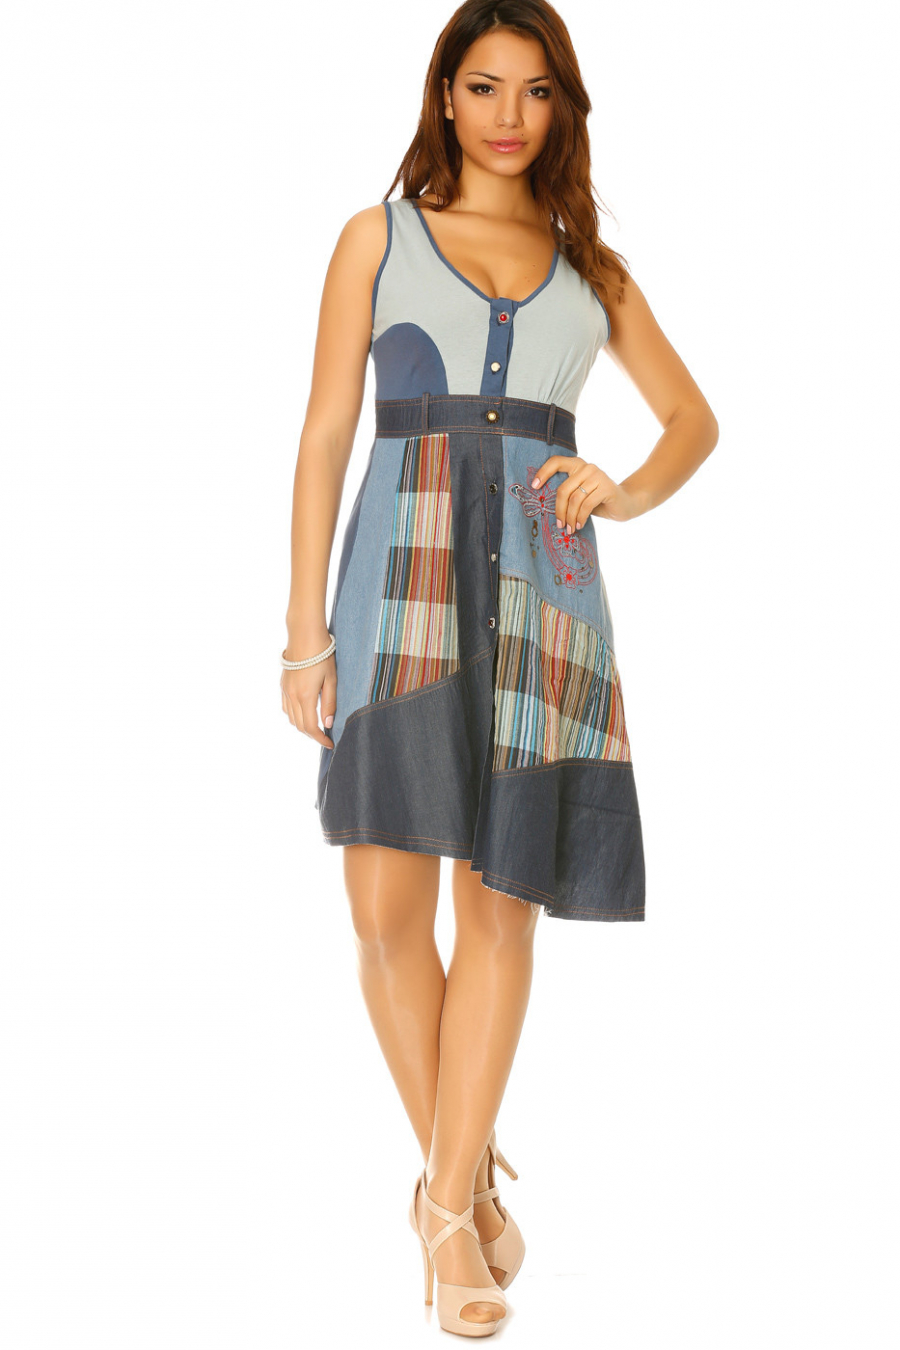 Denim dress with buttons and several pieces of green and colored fabric Z014